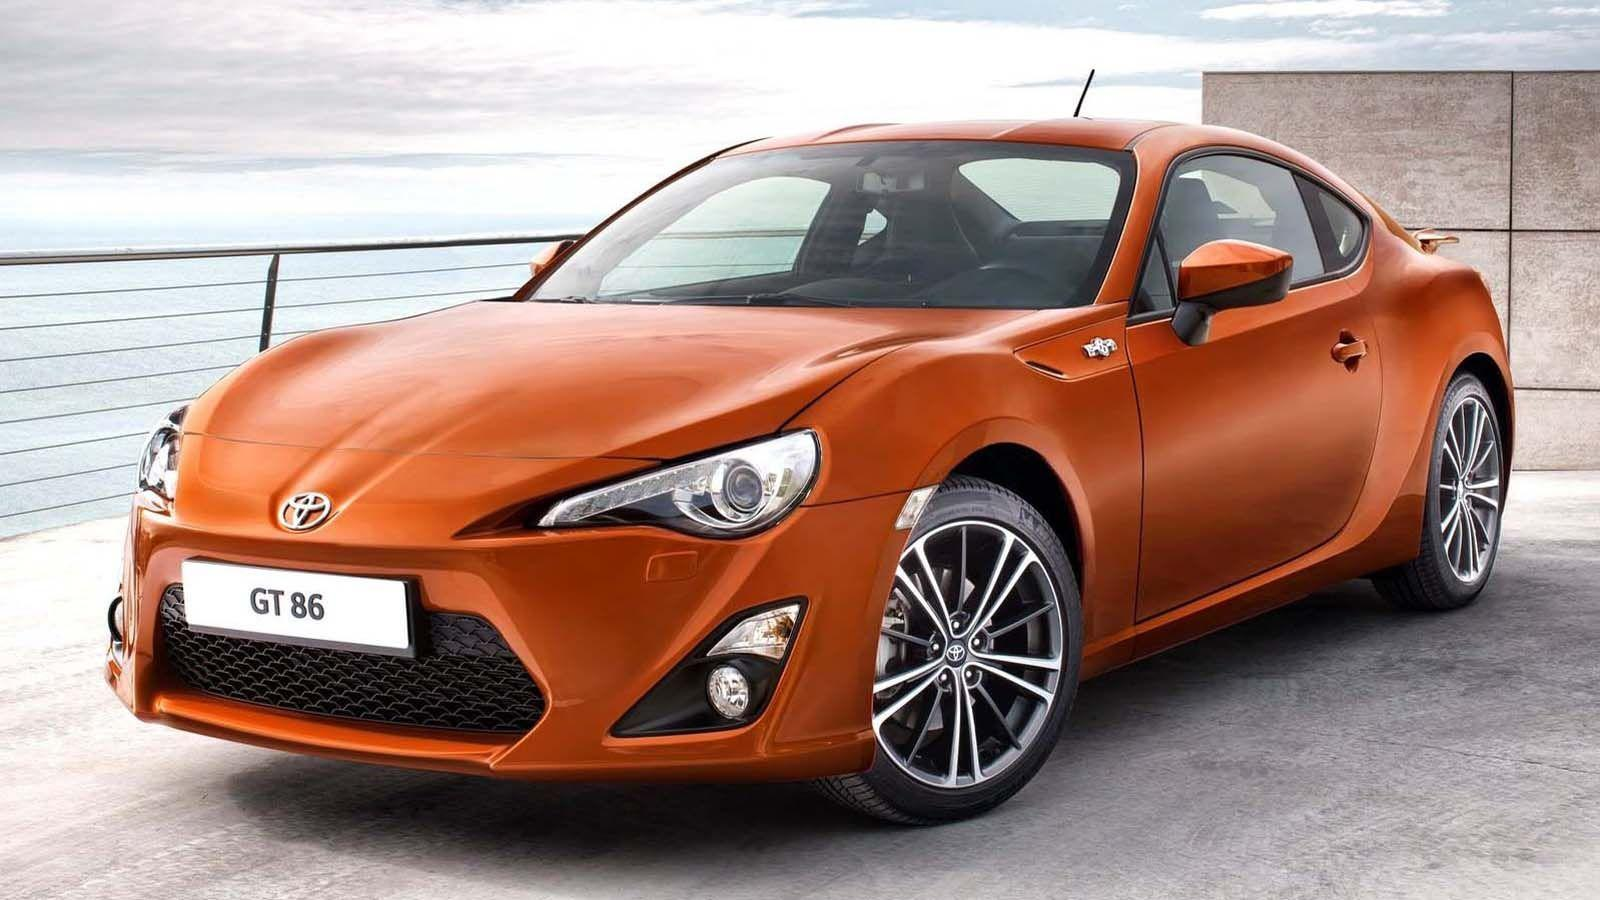 Play Spot The Ball For A Chance To Win A Toyota GT86, Ticket Price